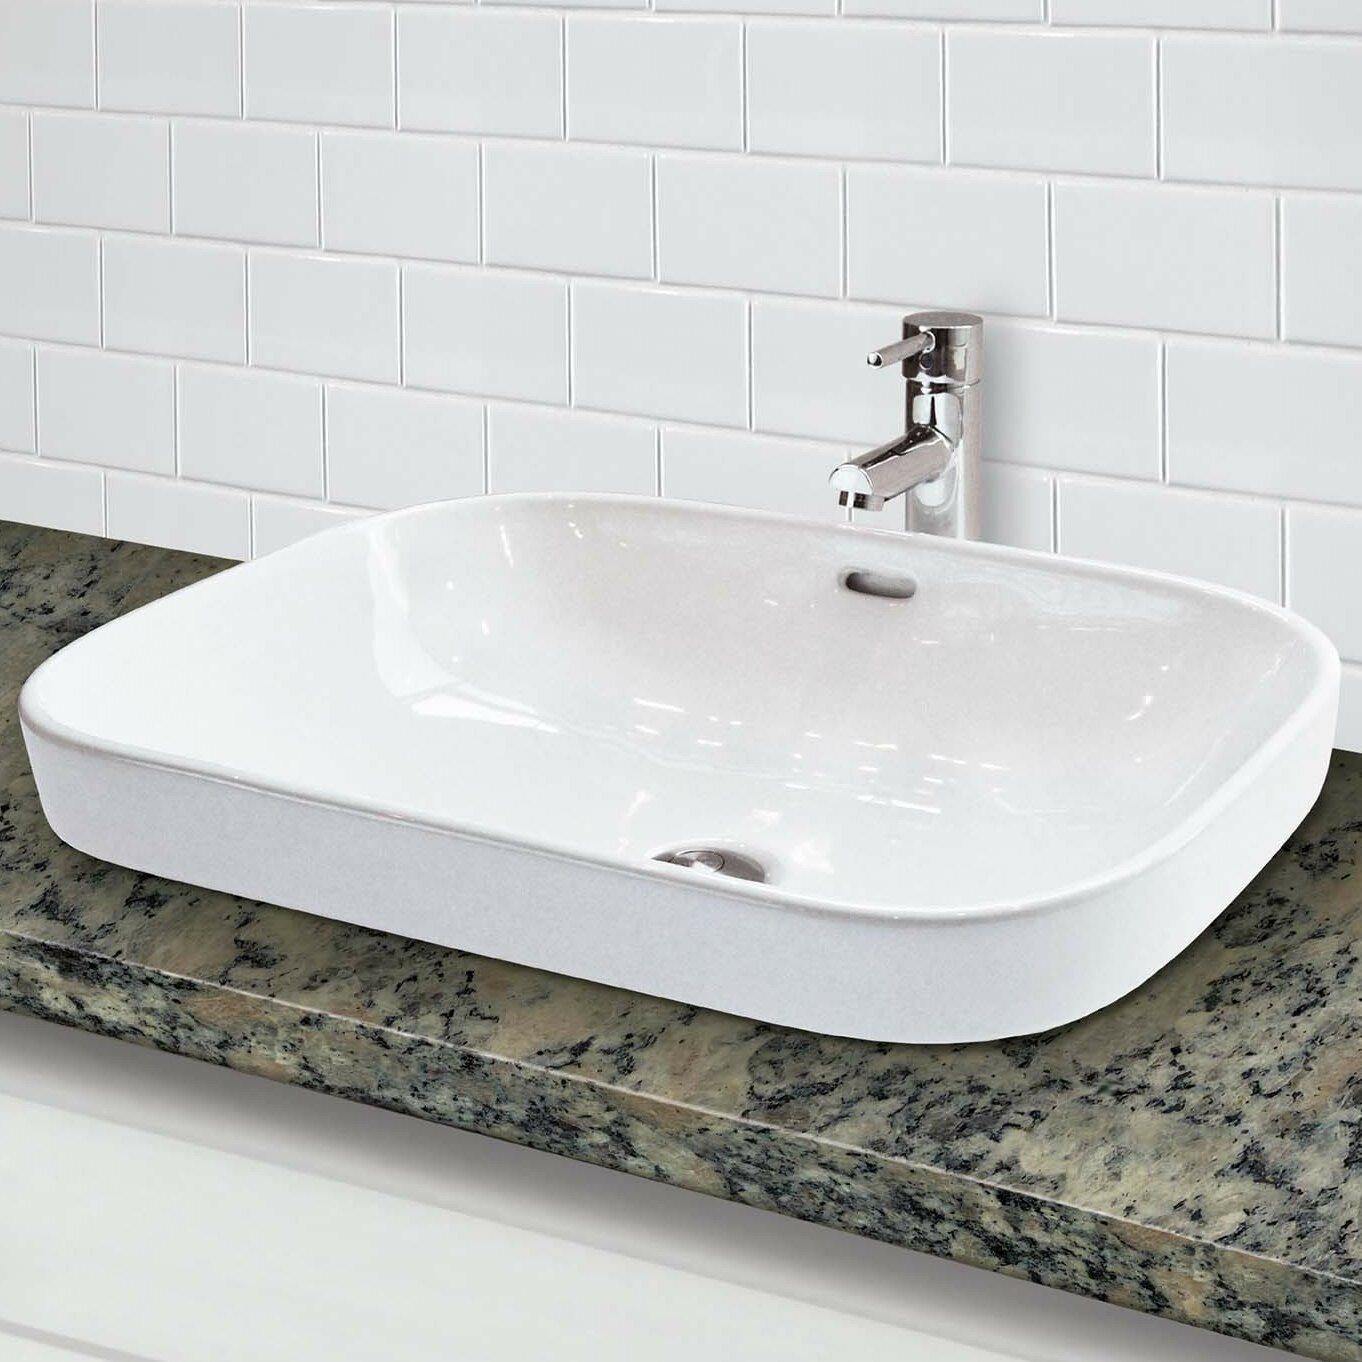 Rectangular Vessel Sink With Overflow : ... Redefined Rectangular Semi Recessed Vessel Lavatory Sink with Overflow